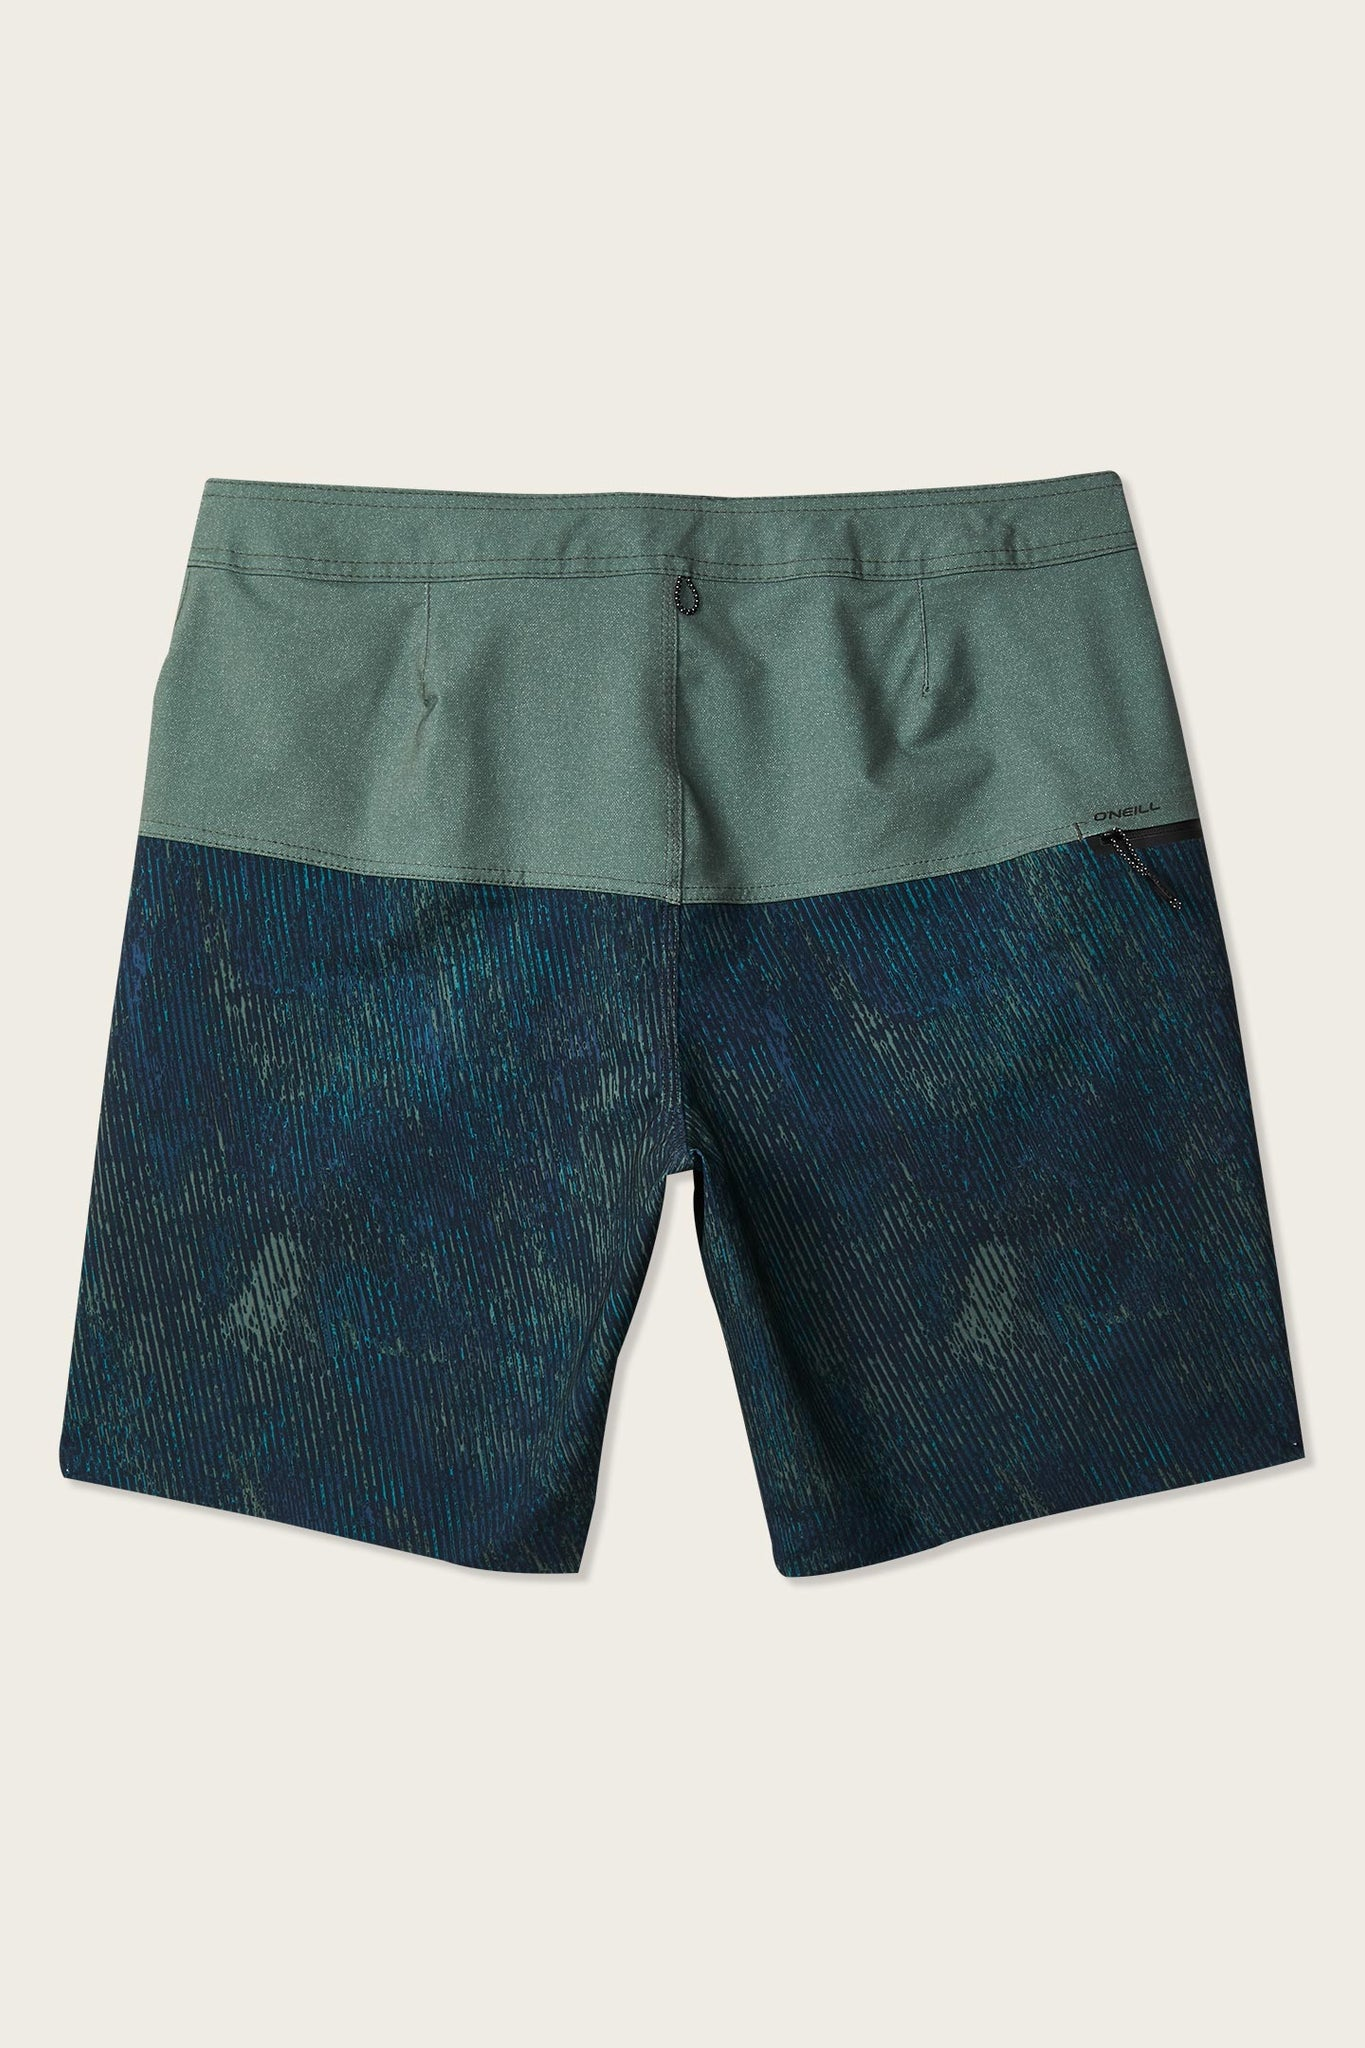 Hyperfreak Nomad Boardshorts | O'Neill Clothing USA